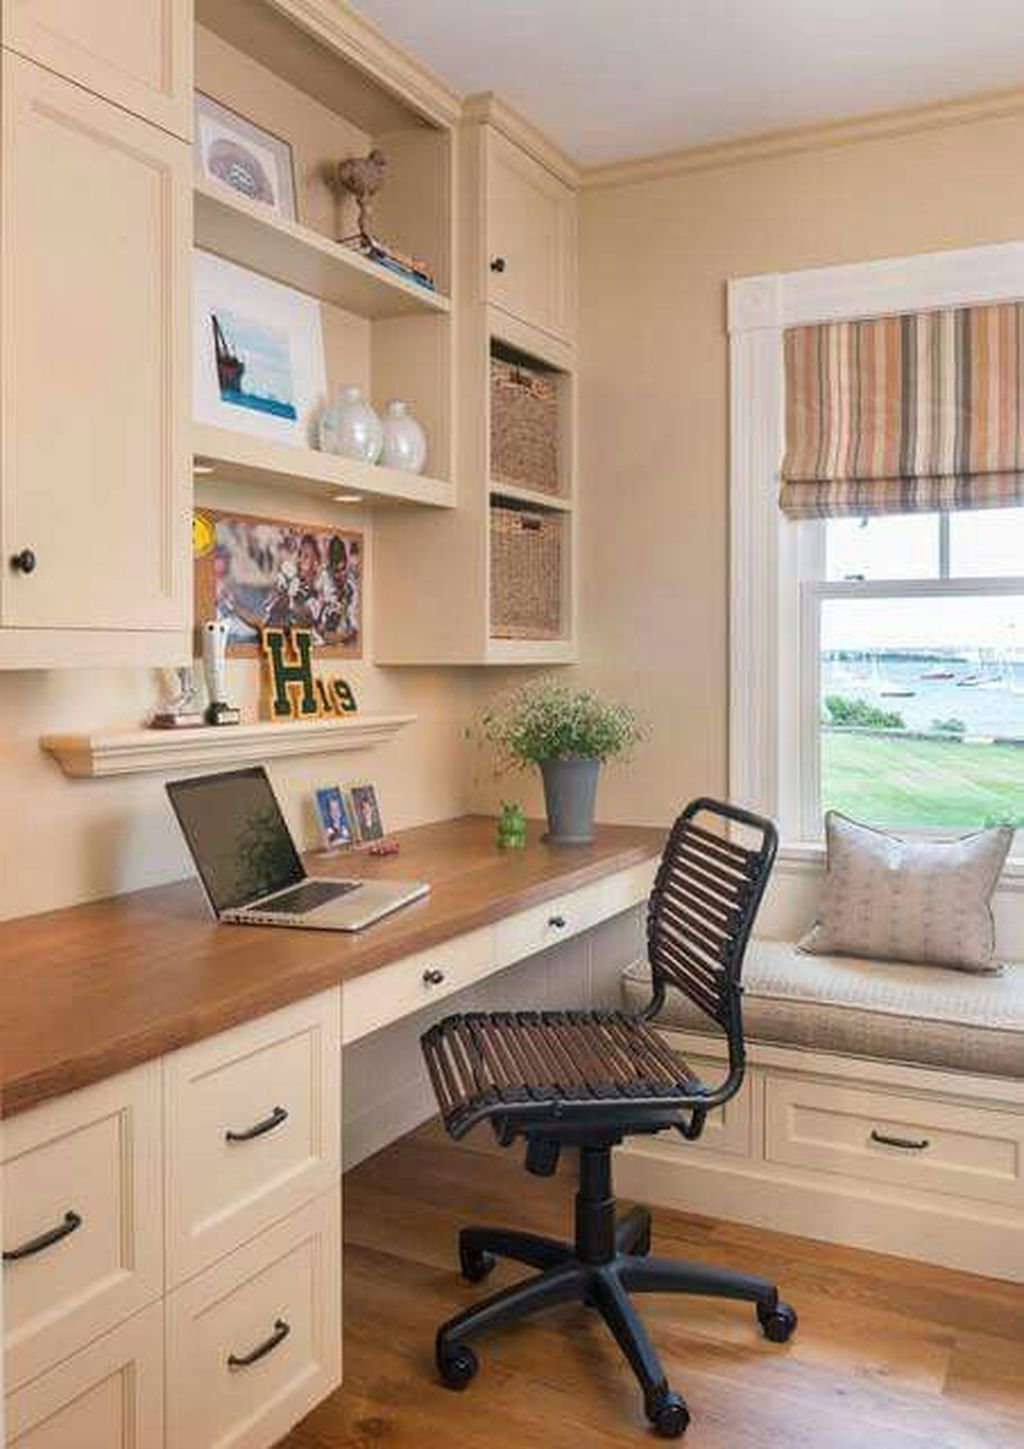 Awesome 42 Comfy Home Office Window Design Ideas More At Https Homyfeed Com 2019 02 21 42 Comfy Home Offic Small Home Offices Home Office Home Office Design